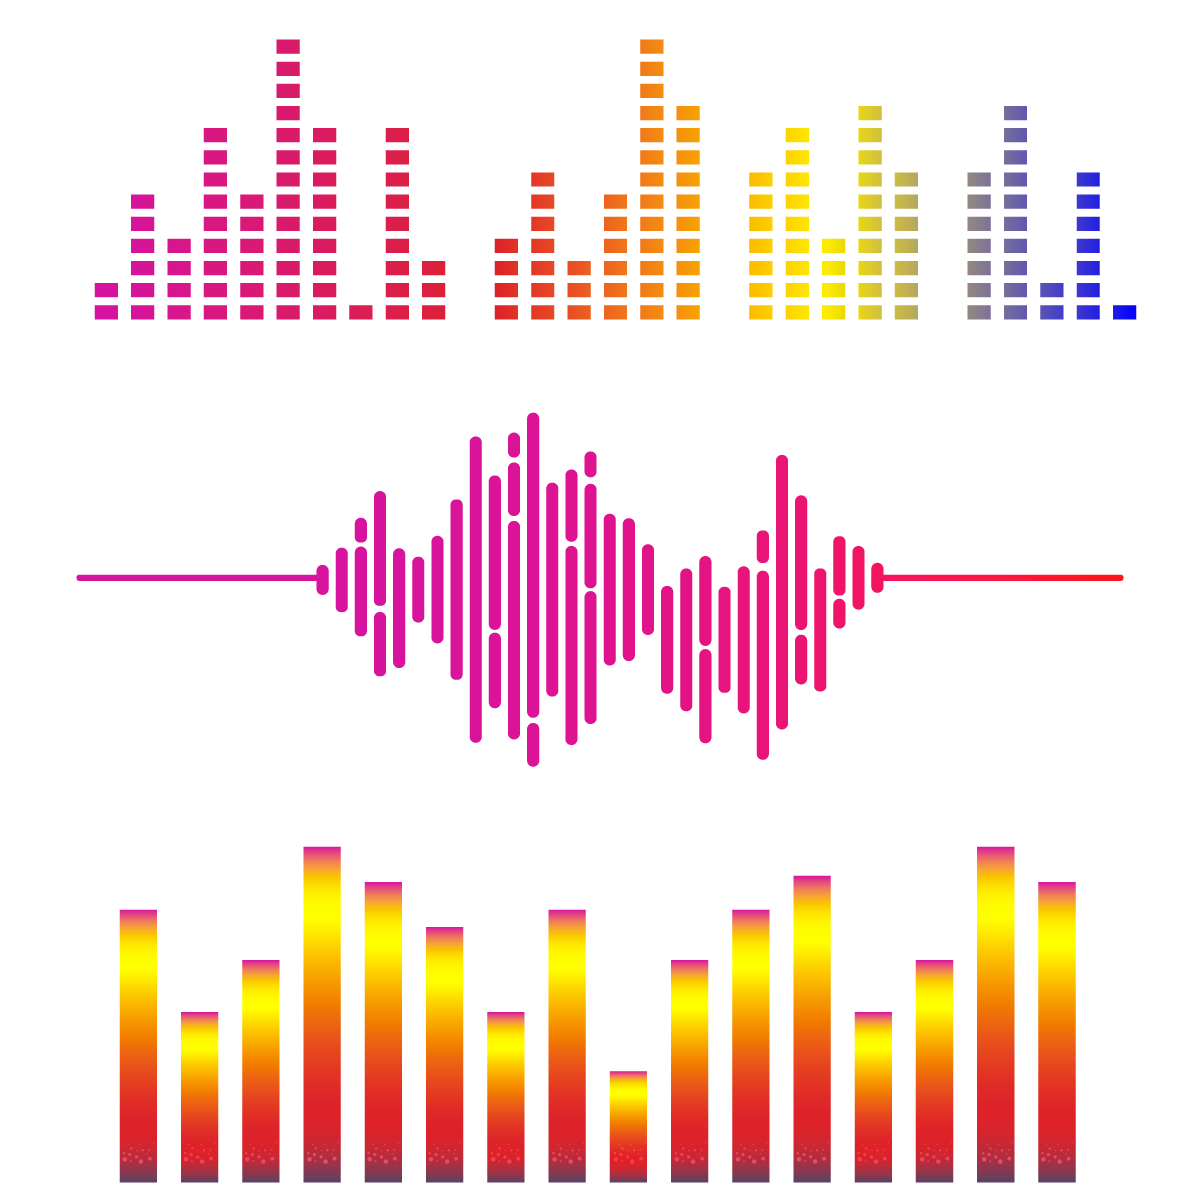 Sound Waves Png